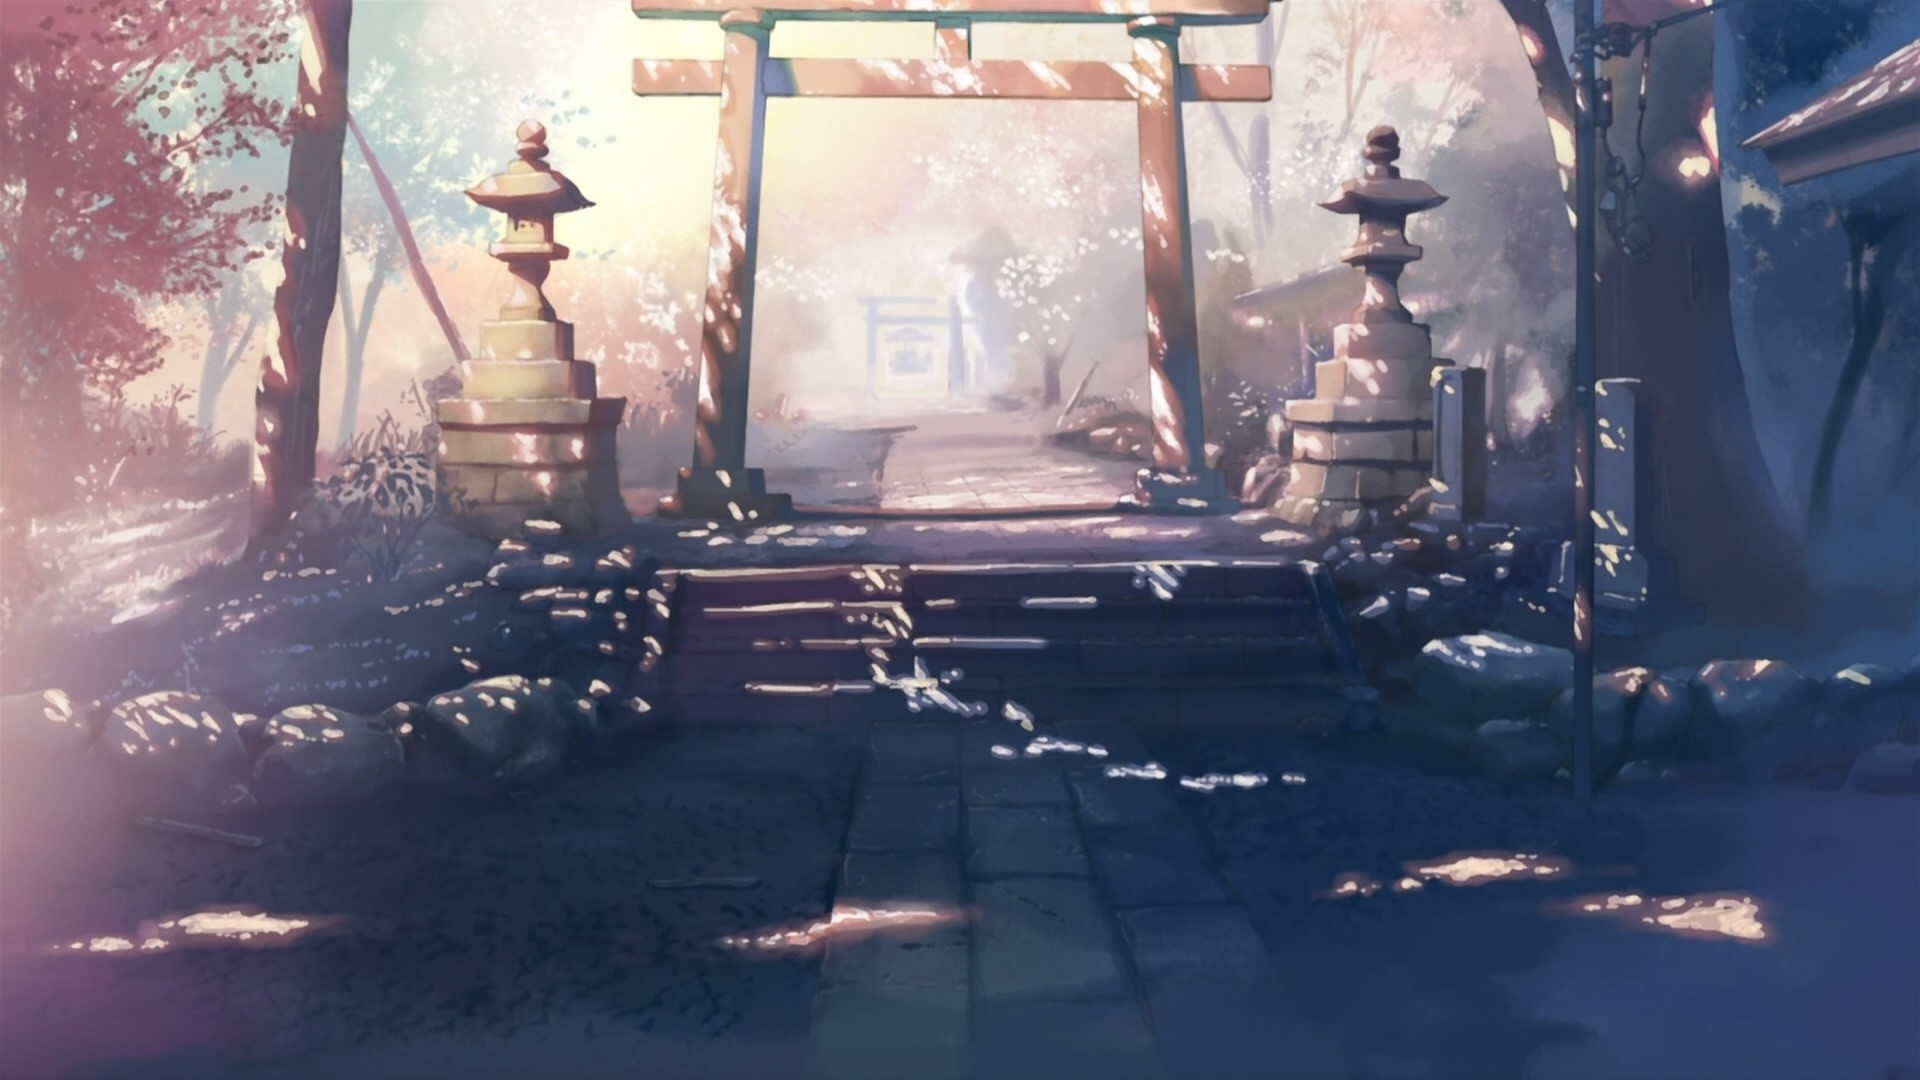 Entrance To The Garden In The Anime Five Centimeters - 5 Centimeters Per Second Places , HD Wallpaper & Backgrounds